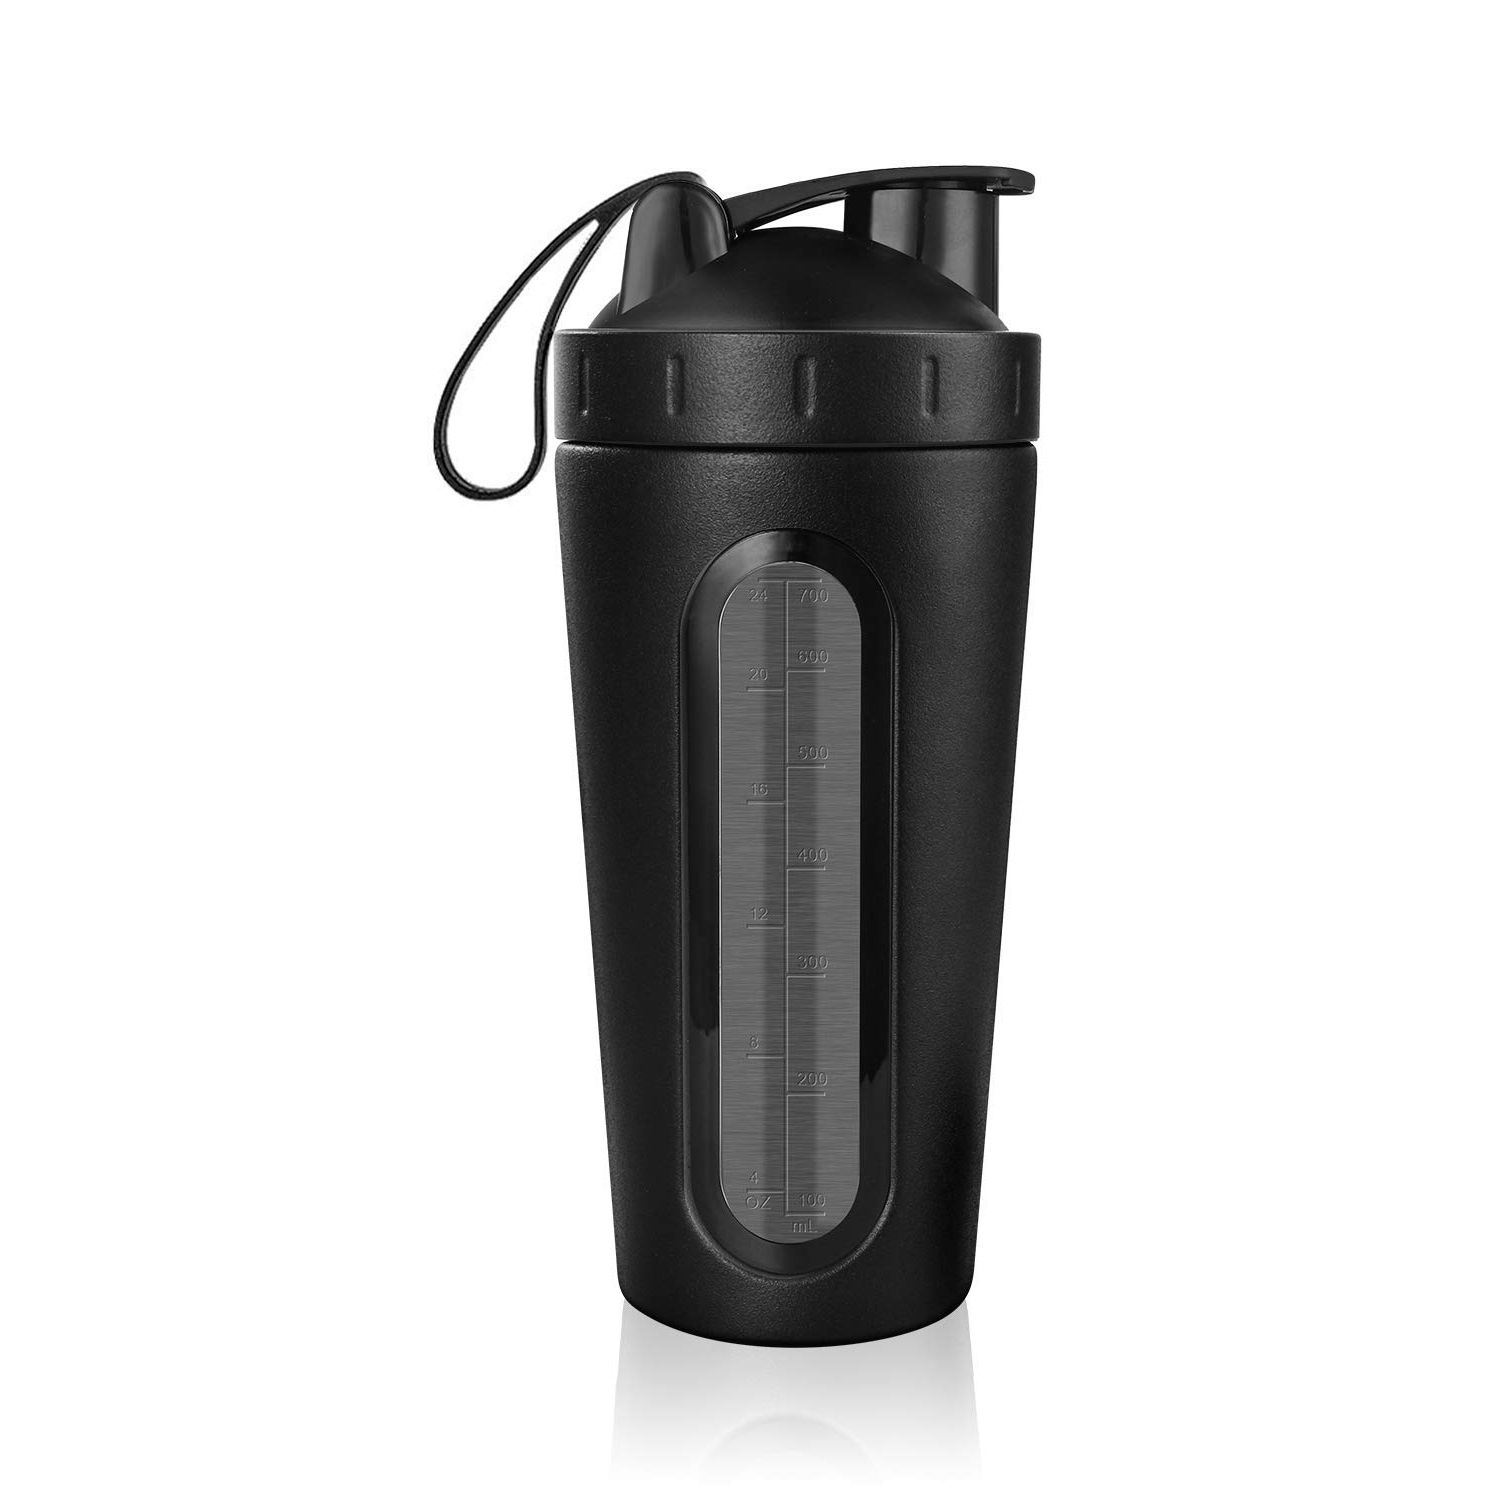 Suzuki Jimny Stainless Bottle /& Case 400ml  Provided by manufacturer limited